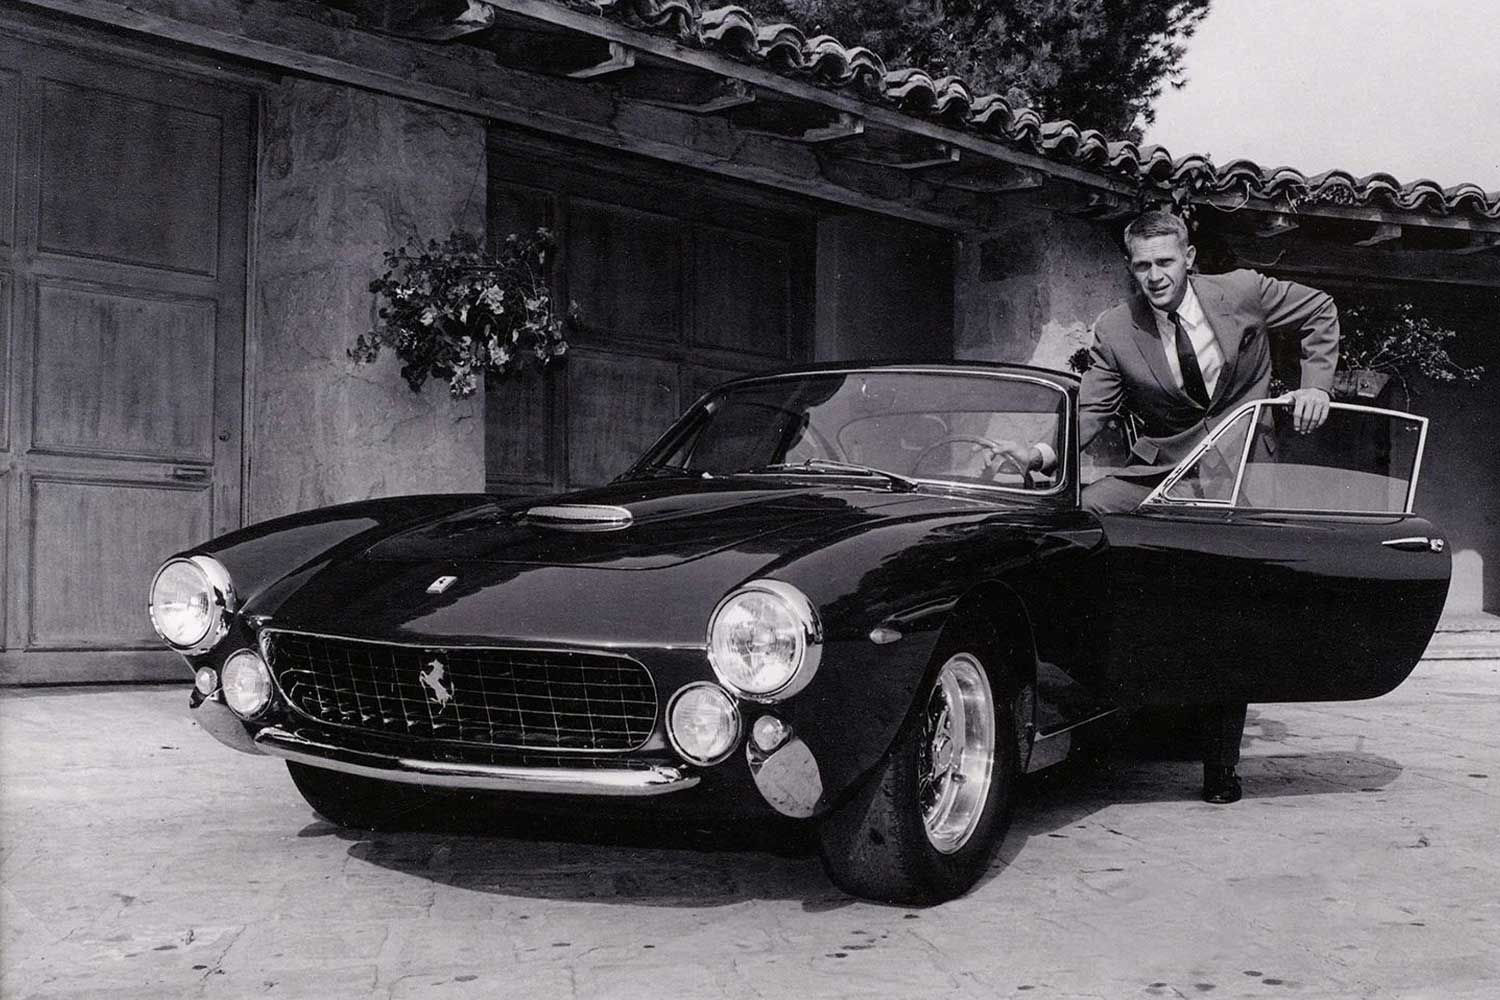 Steve McQueen with his 1963 Ferrari 250 GT Berlinetta Lusso, chassis number 4891, a gift from his first wife, Neile Adams, on his 34th birthday (Image: gq-magazine.co.uk)